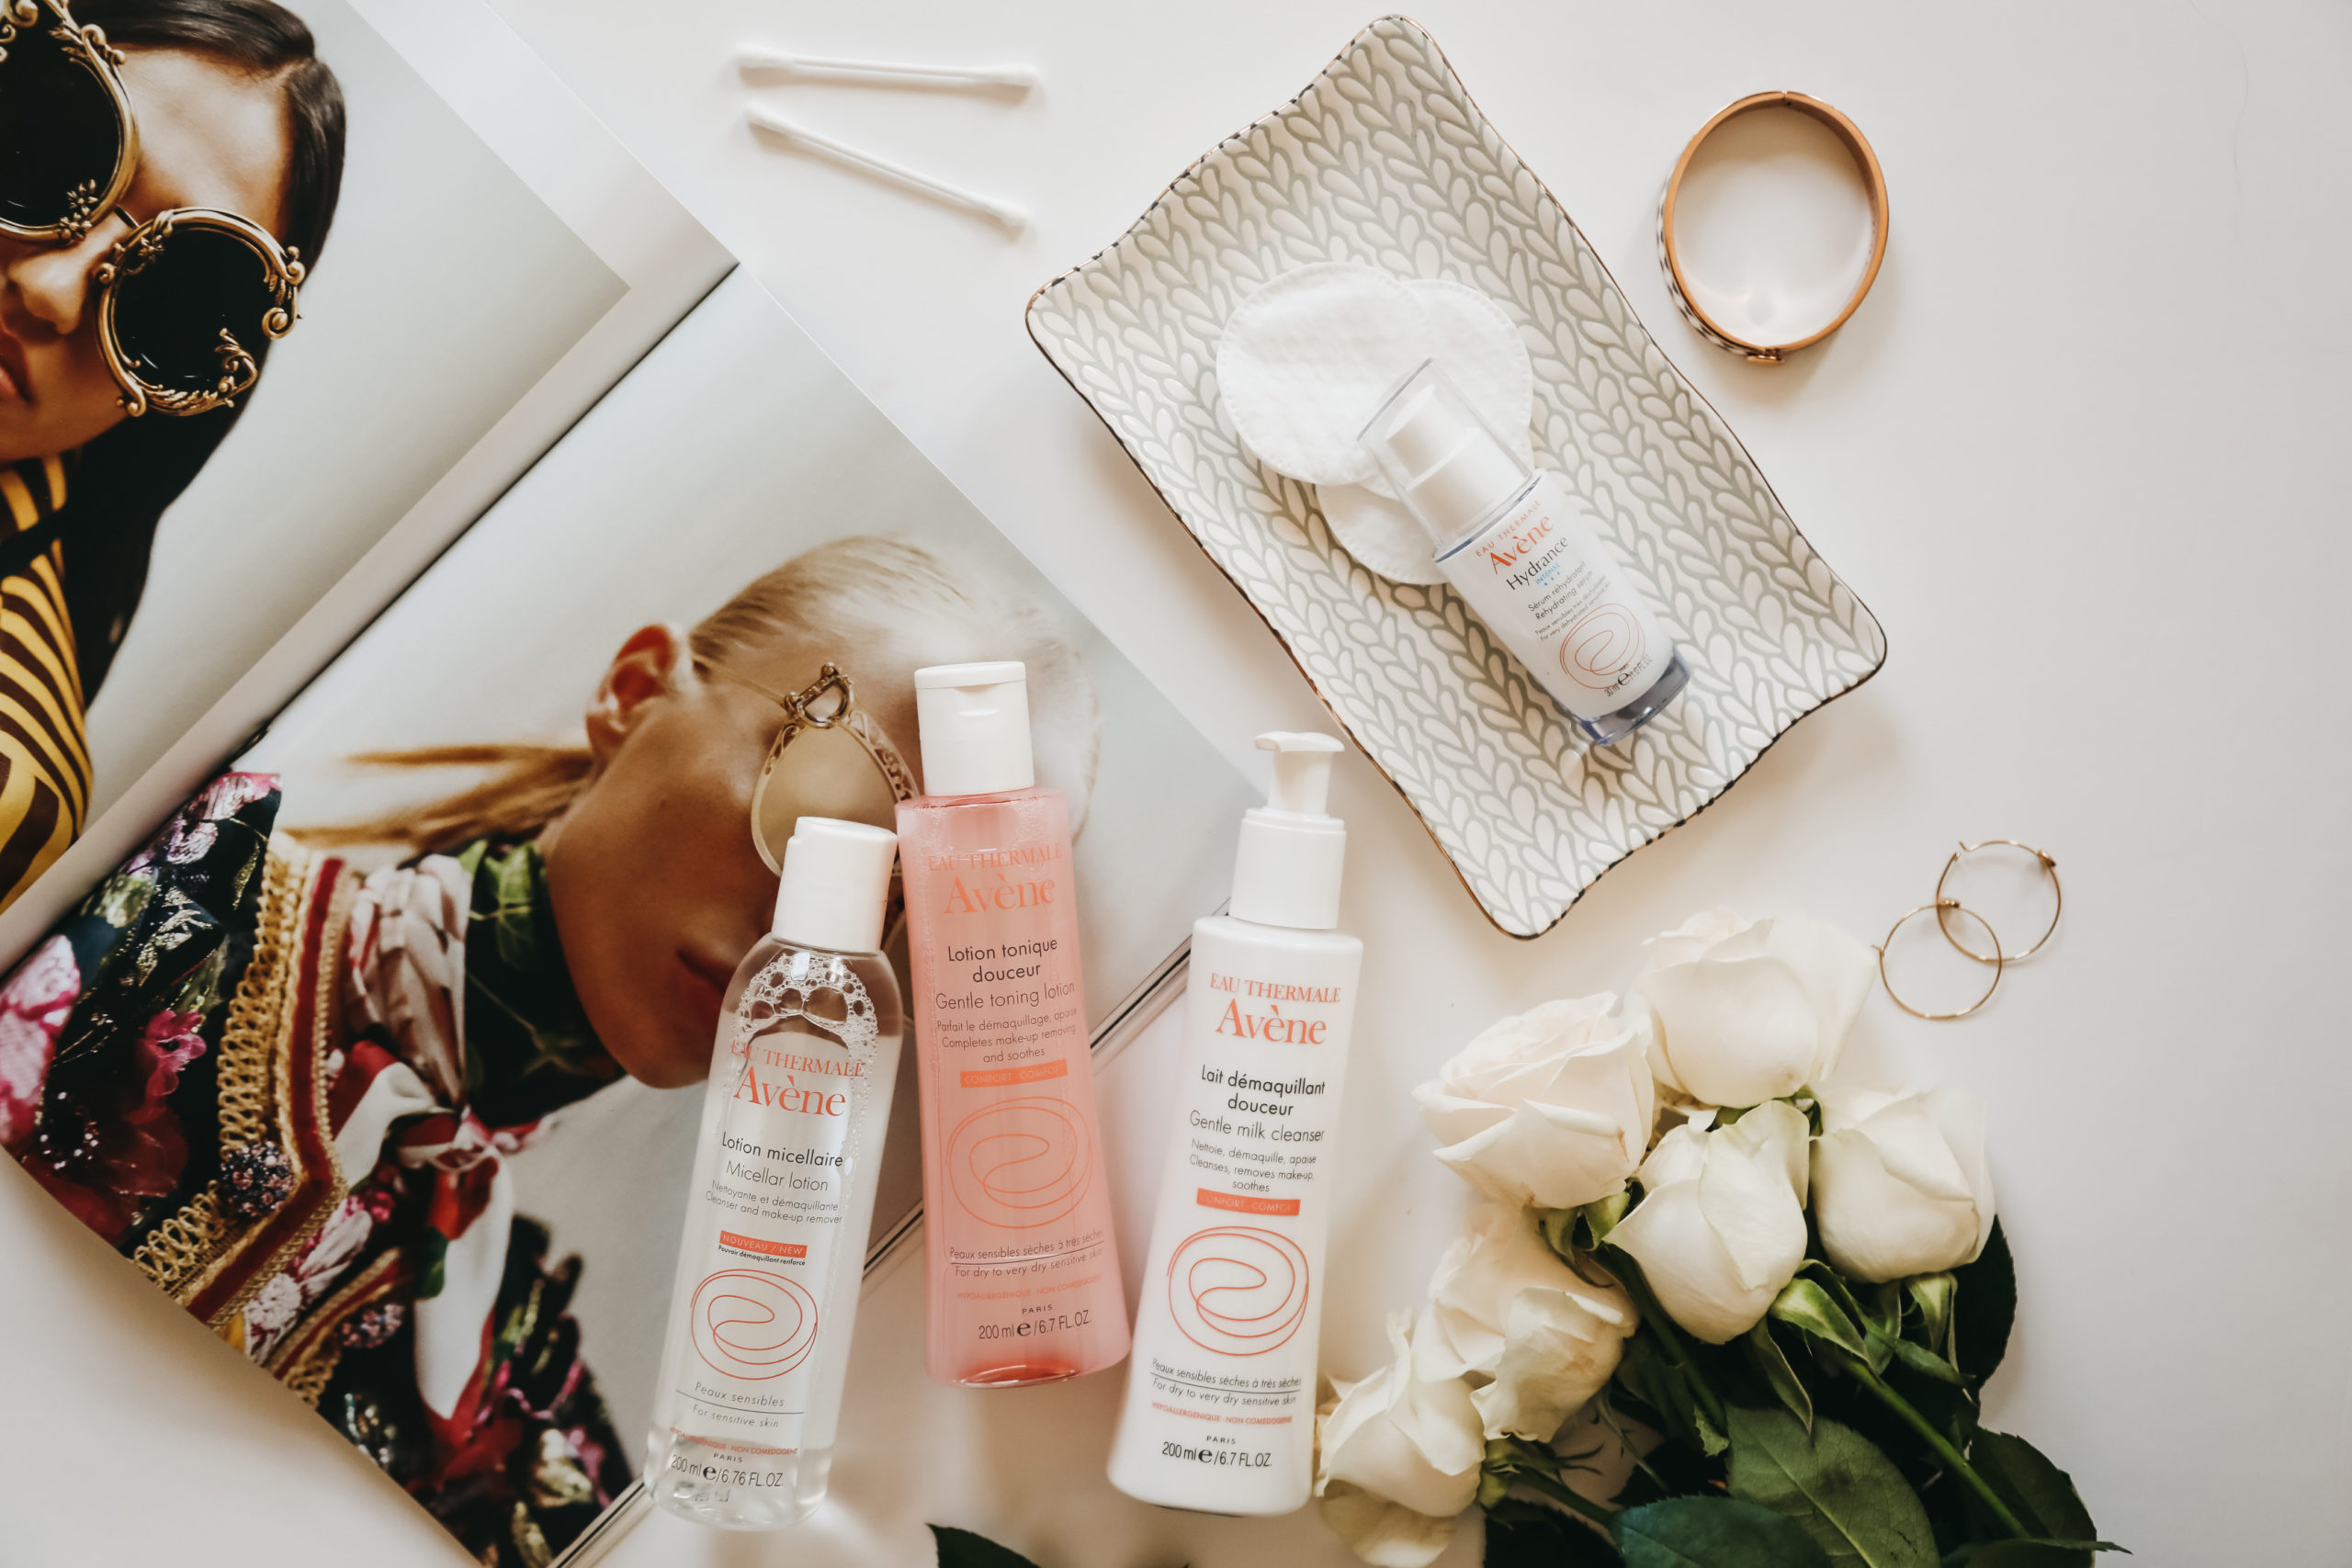 hydrated with Avene skincare